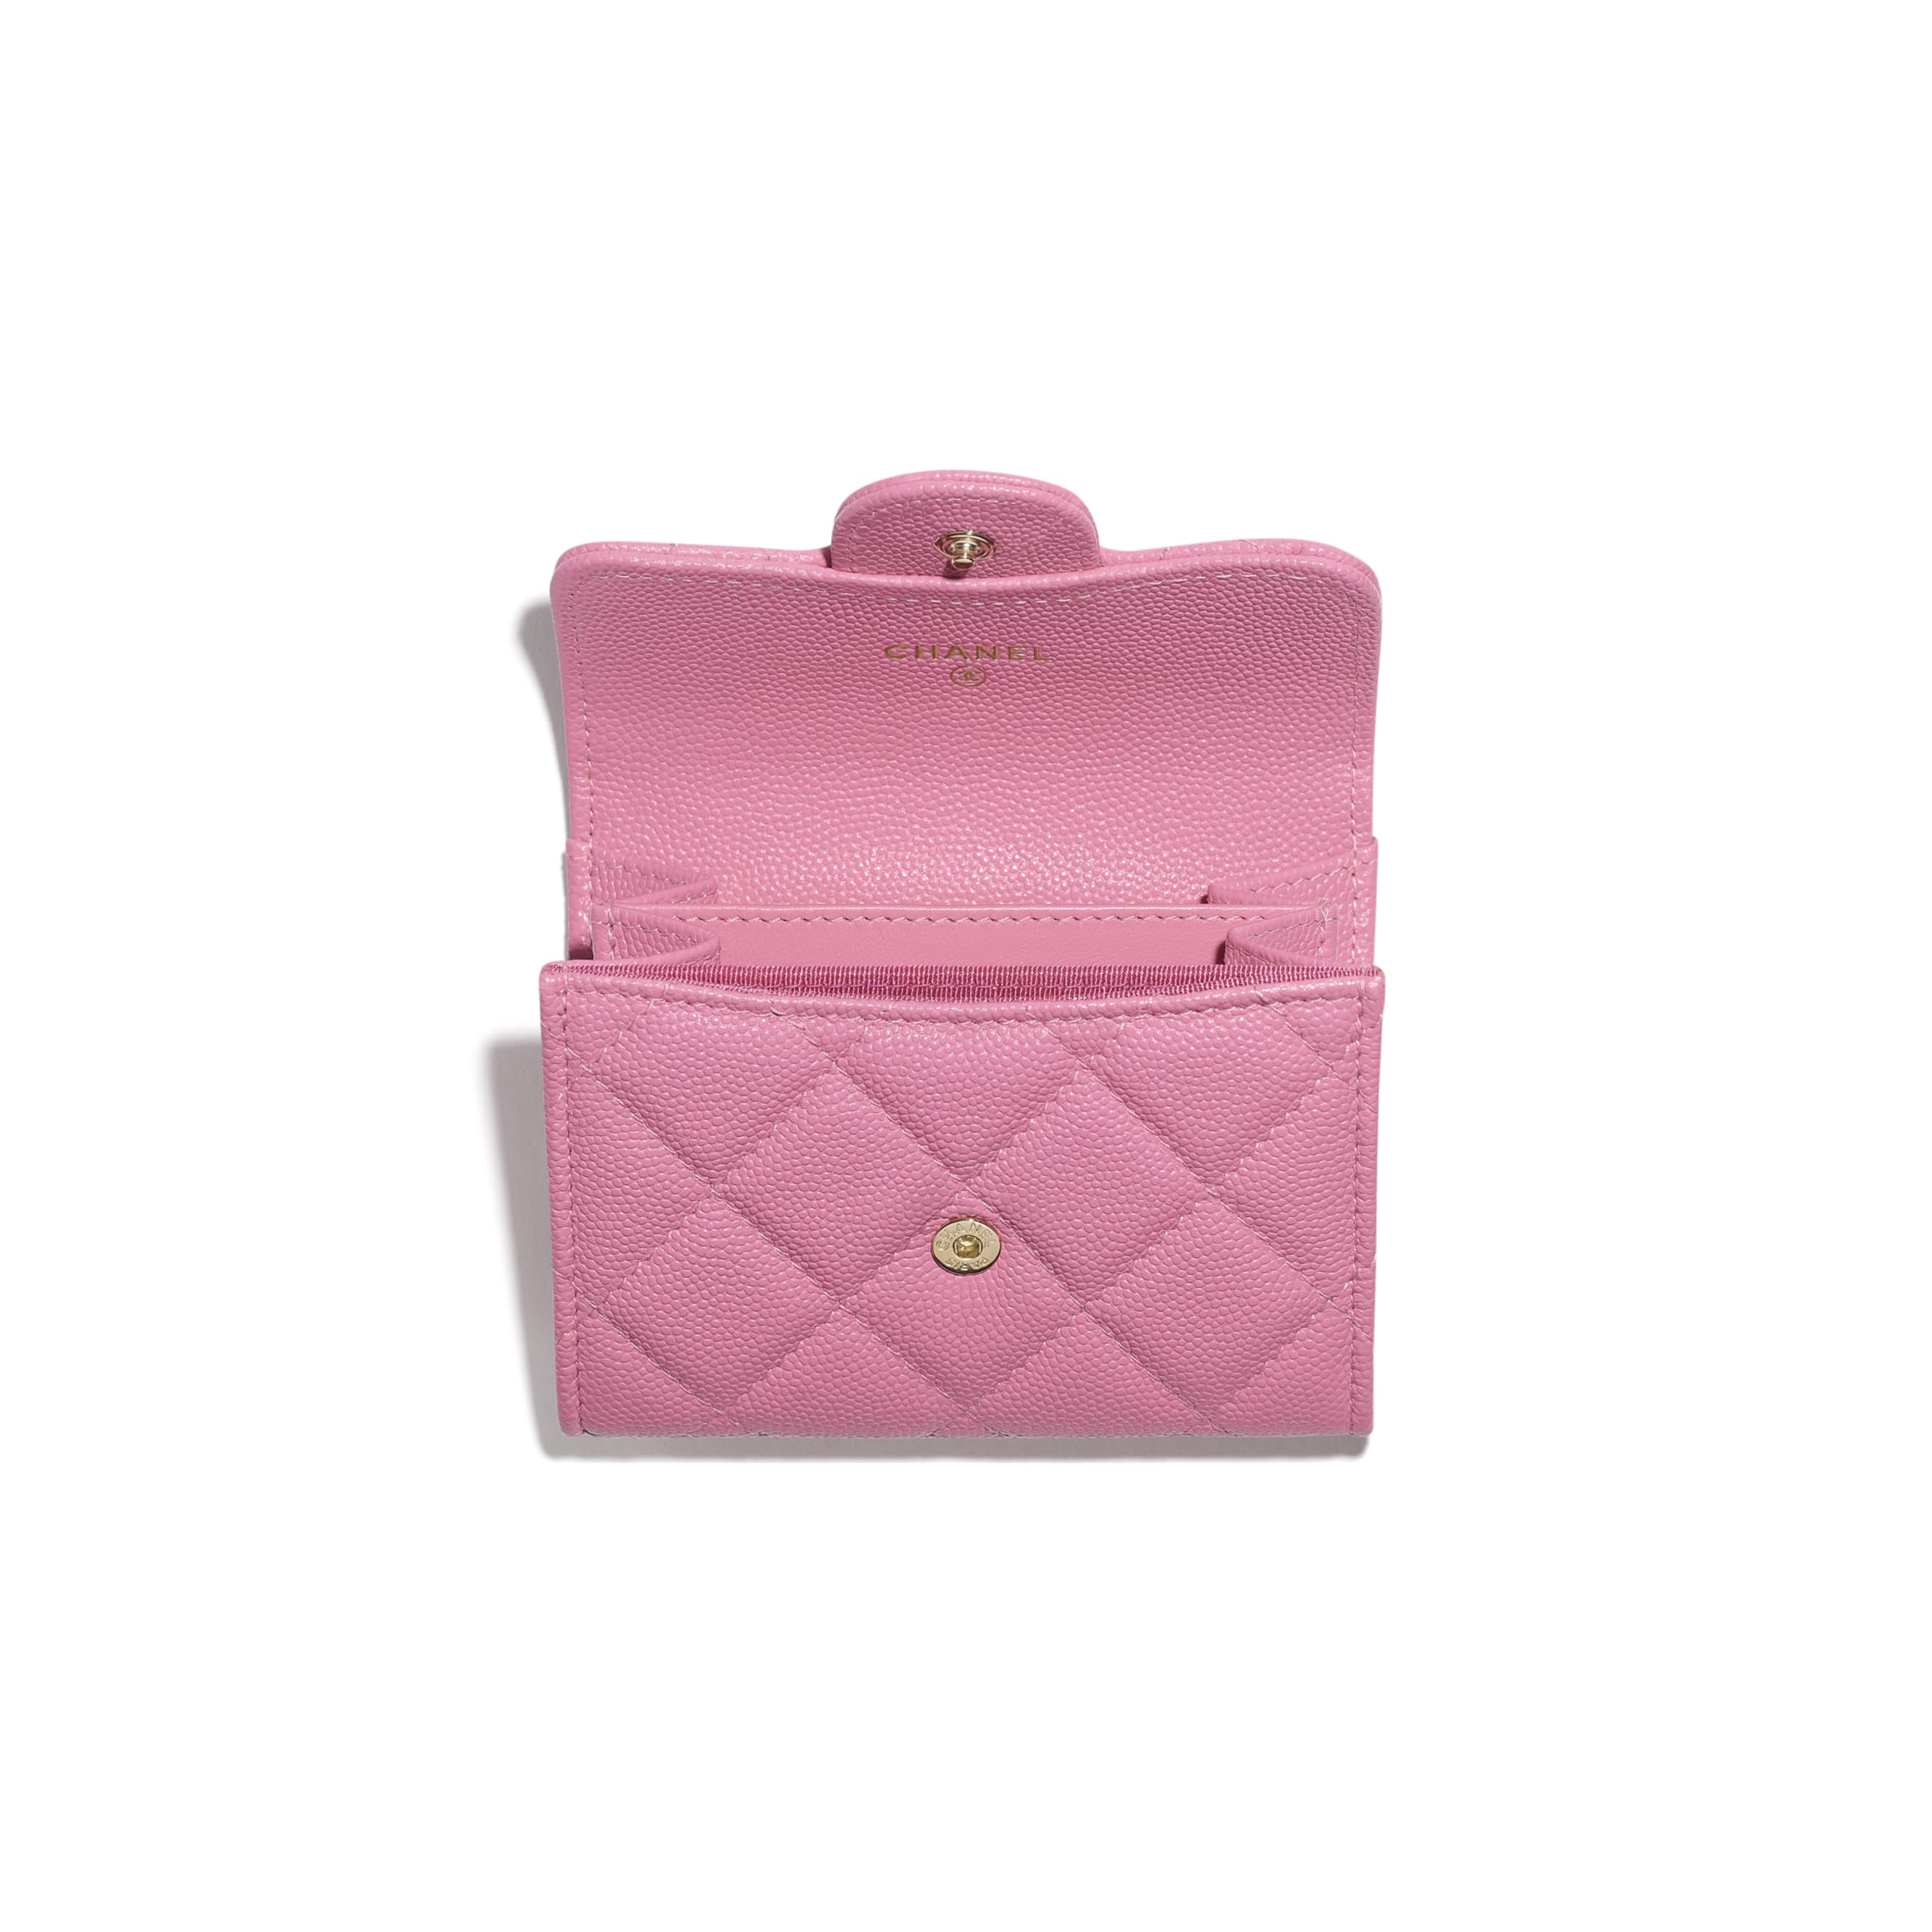 Classic Flap Coin Purse - Pink - Grained Calfskin & Gold-Tone Metal - CHANEL - Alternative view - see standard sized version